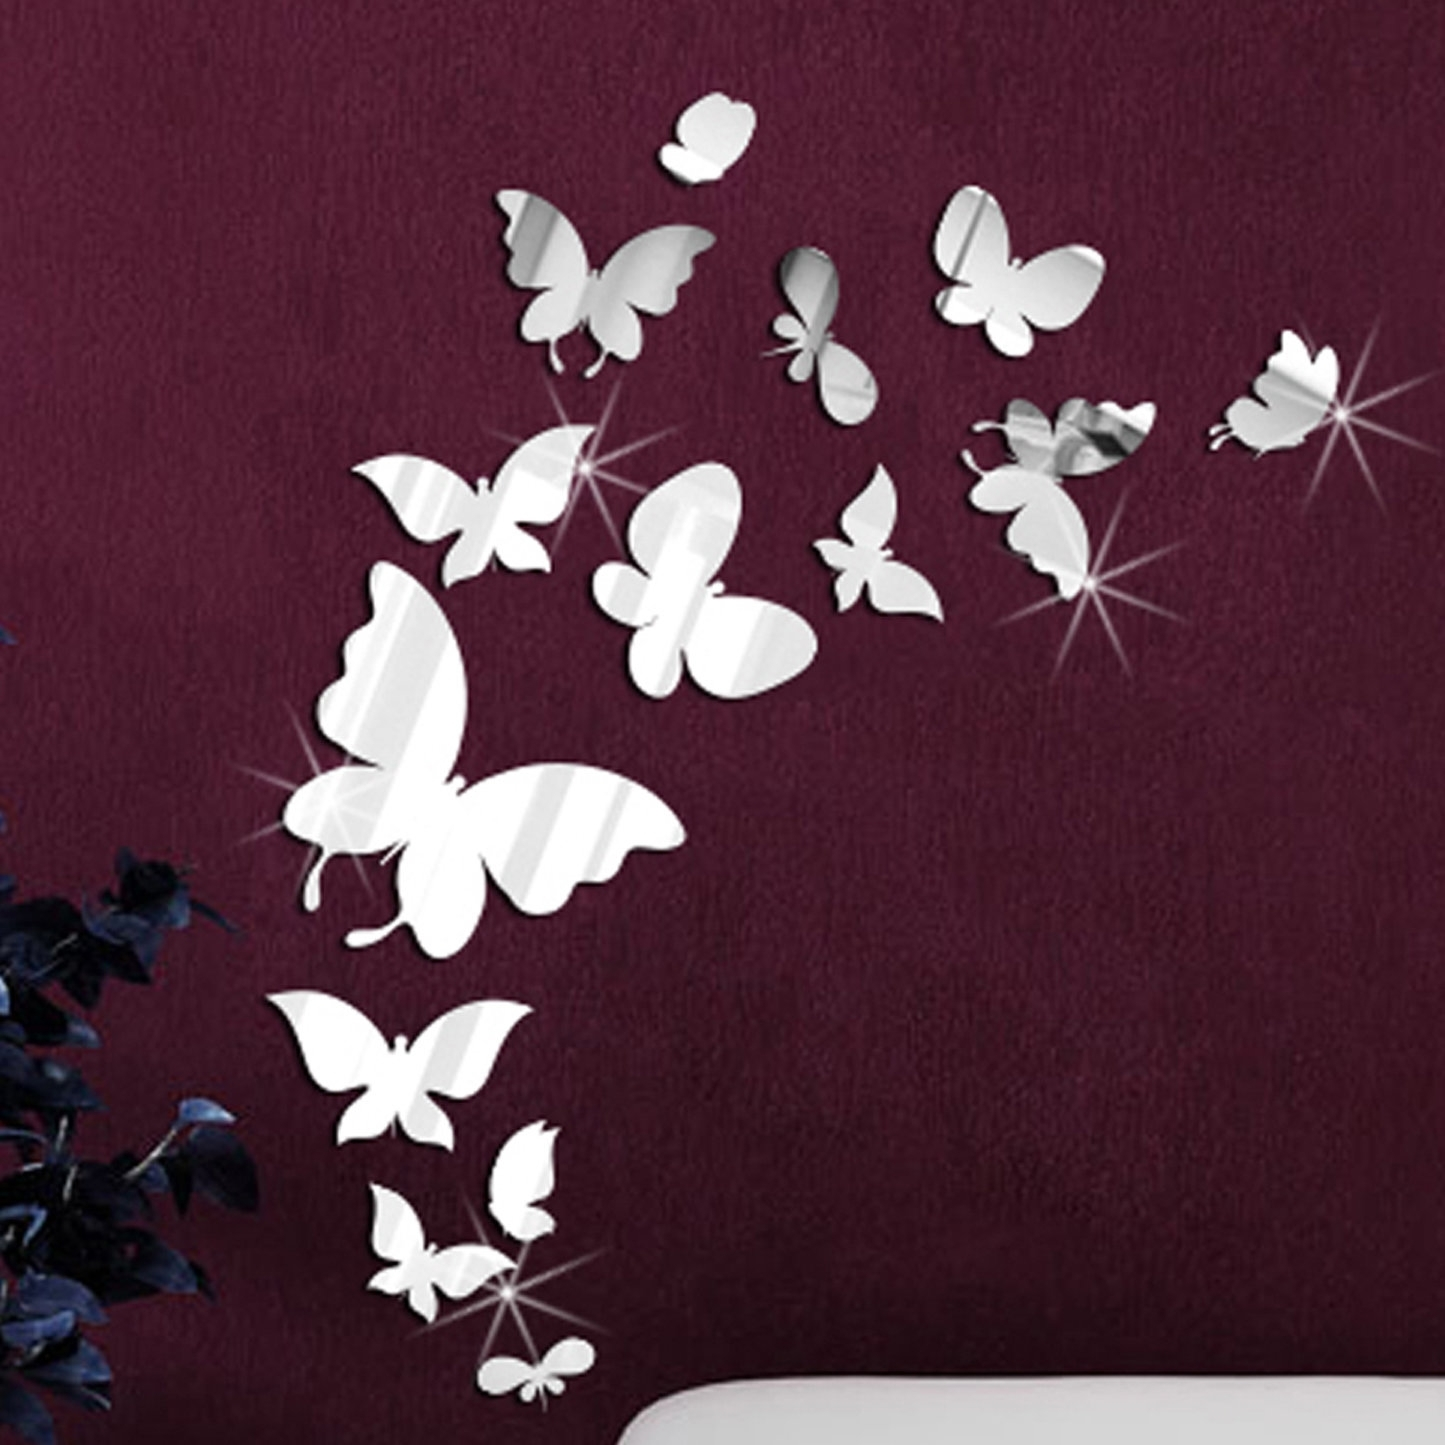 Walplus 14 Mirror Butterflies Wall Art Wall Decal & Reviews | Wayfair With Latest Butterfly Wall Art (View 3 of 15)